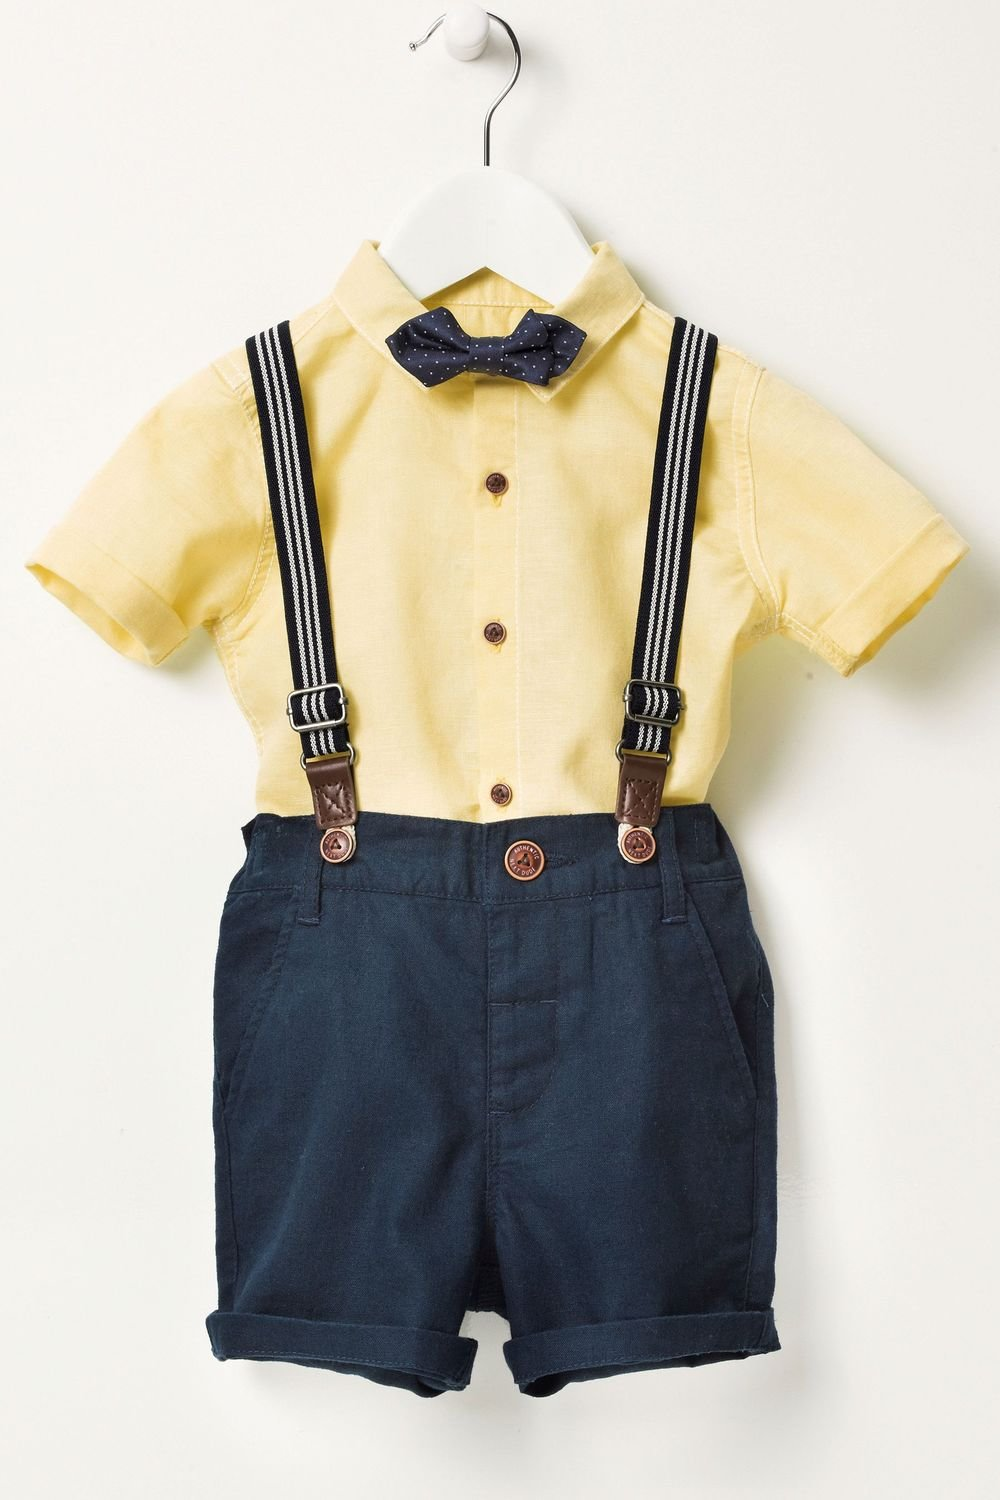 f176932e32be Next Shirt Shorts And Bow Tie Set (3mths-6yrs) Online